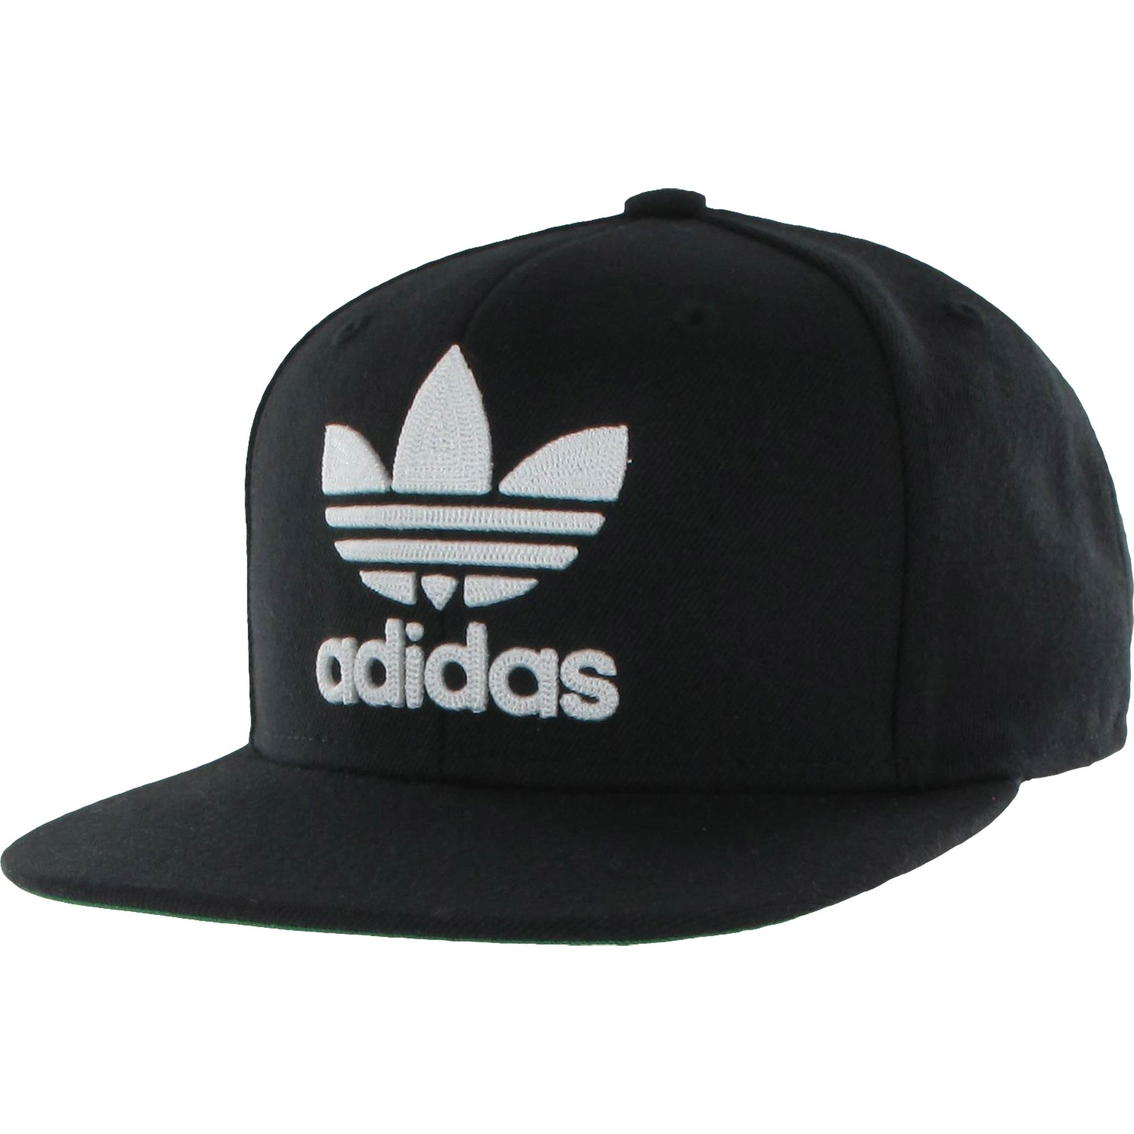 Adidas Originals Trefoil cadena Snapback Cap ball caps & Hats